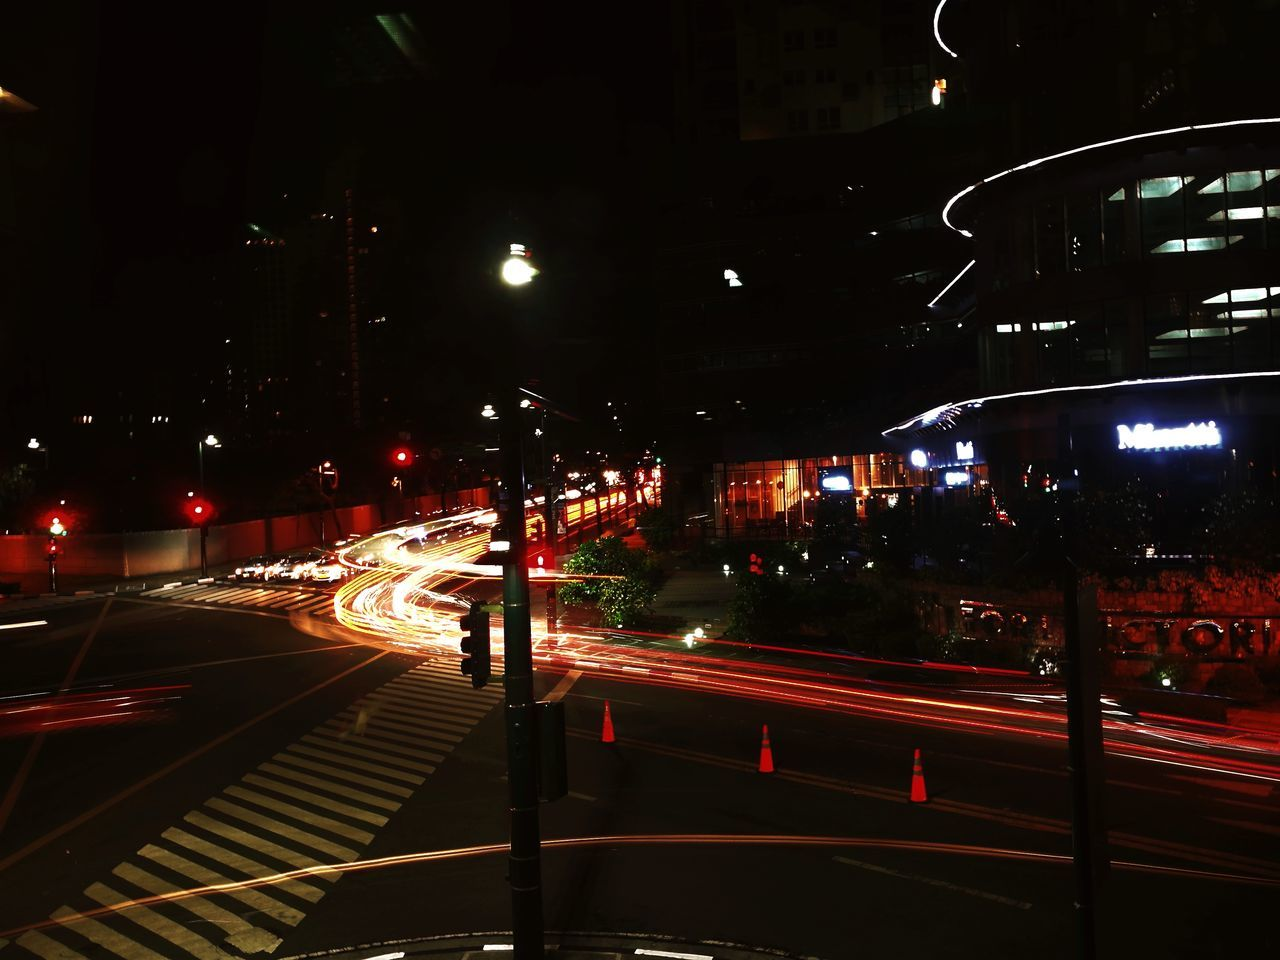 Night Illuminated City City Life Outdoors Street Light No People Architecture EyeemPhilippines Light And Shadow Cityscape Futuristic Business Finance And Industry City City Life Speed Long Exposure Light Trail Red